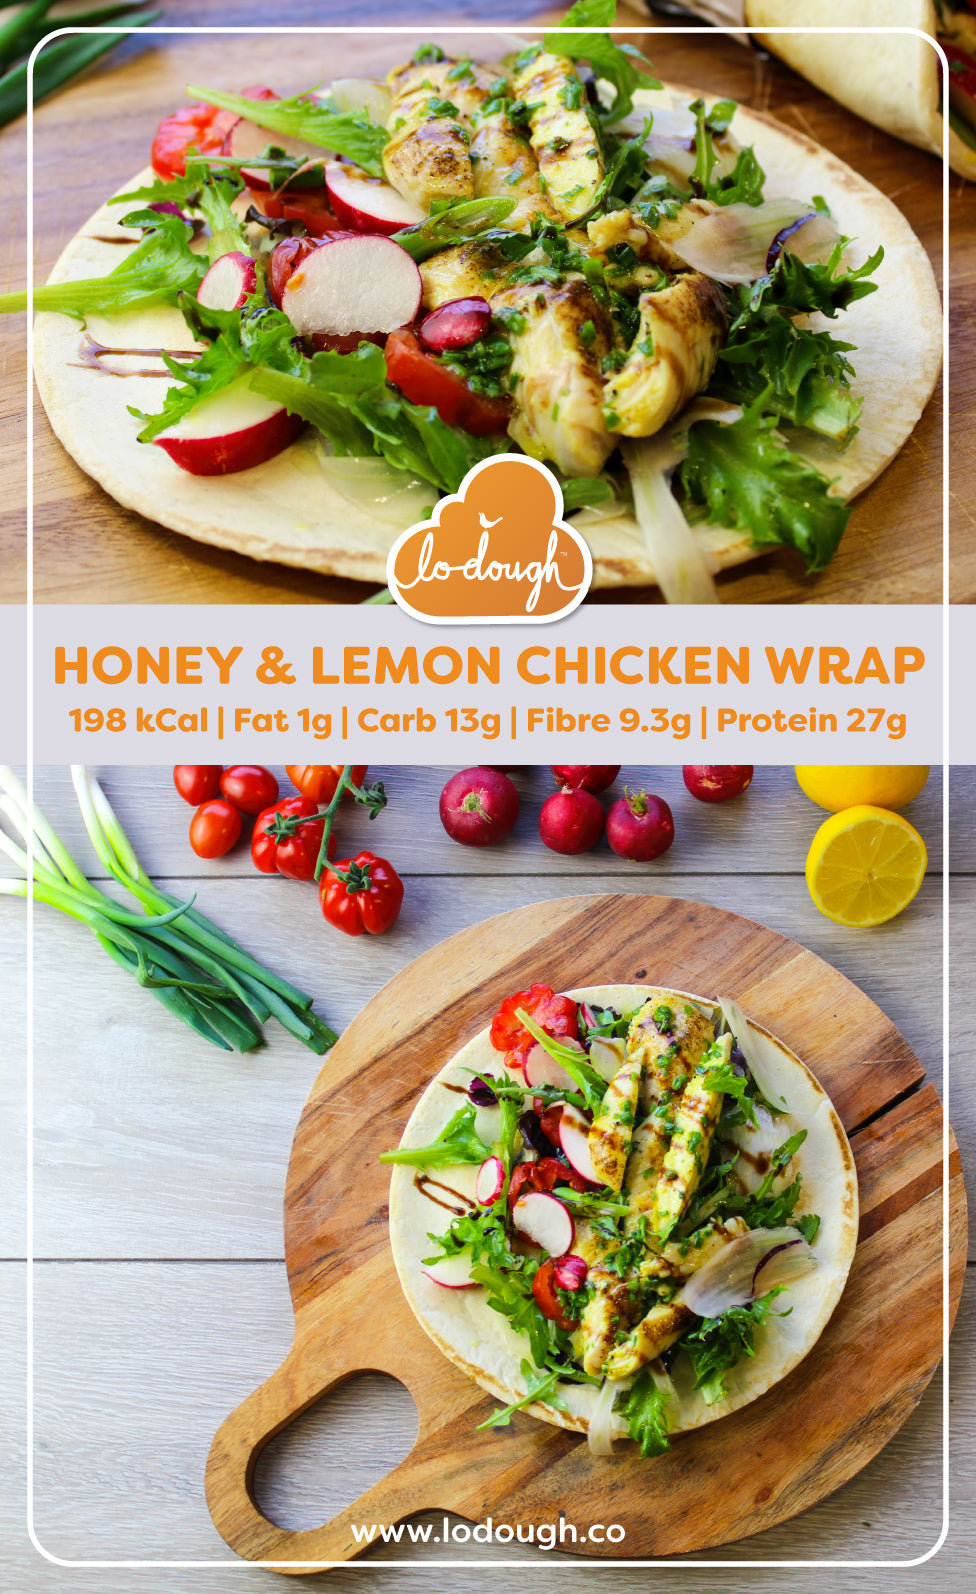 Honey and Lemon Chicken Wrap